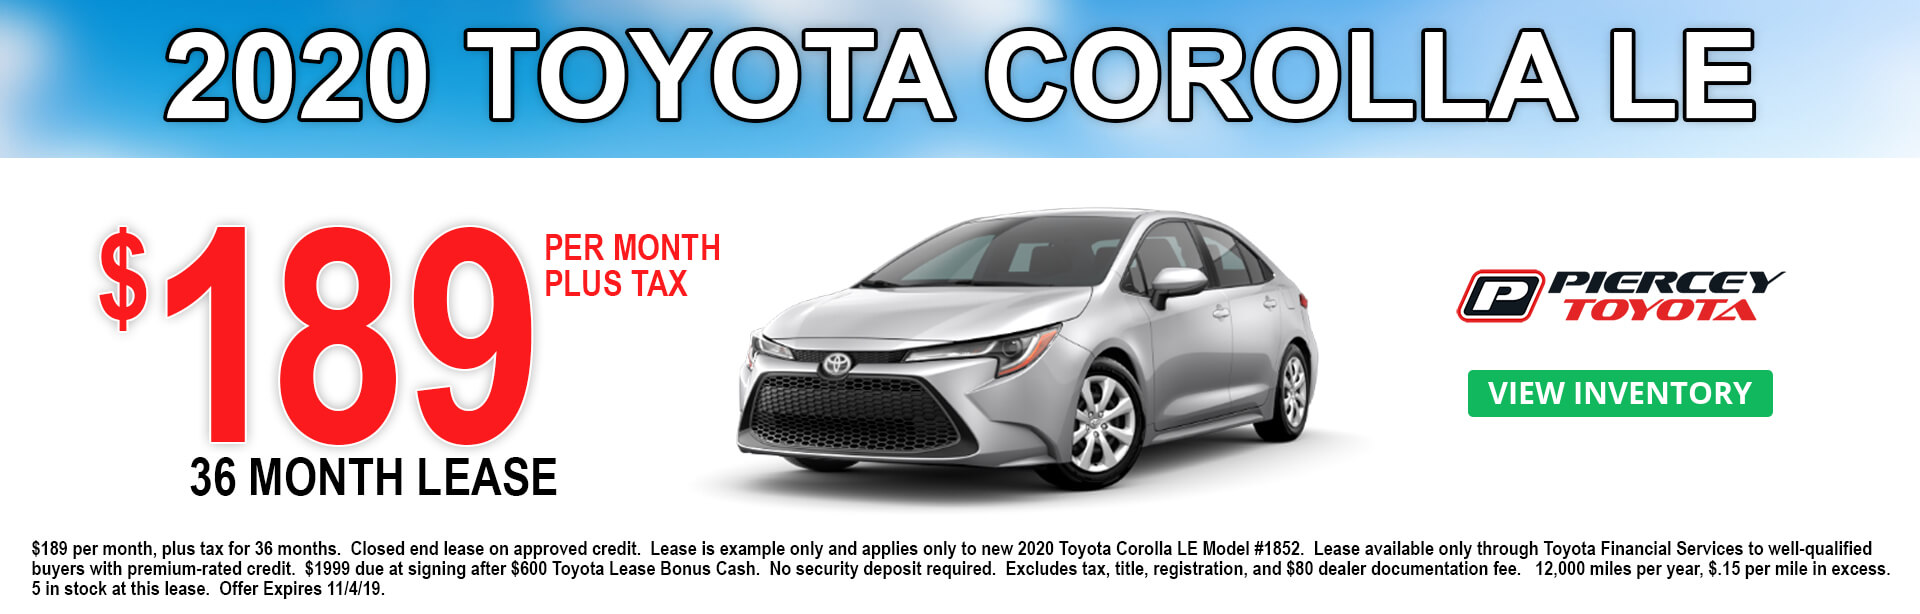 2020 Corolla LE Lease Offer $189 per month 36 Months